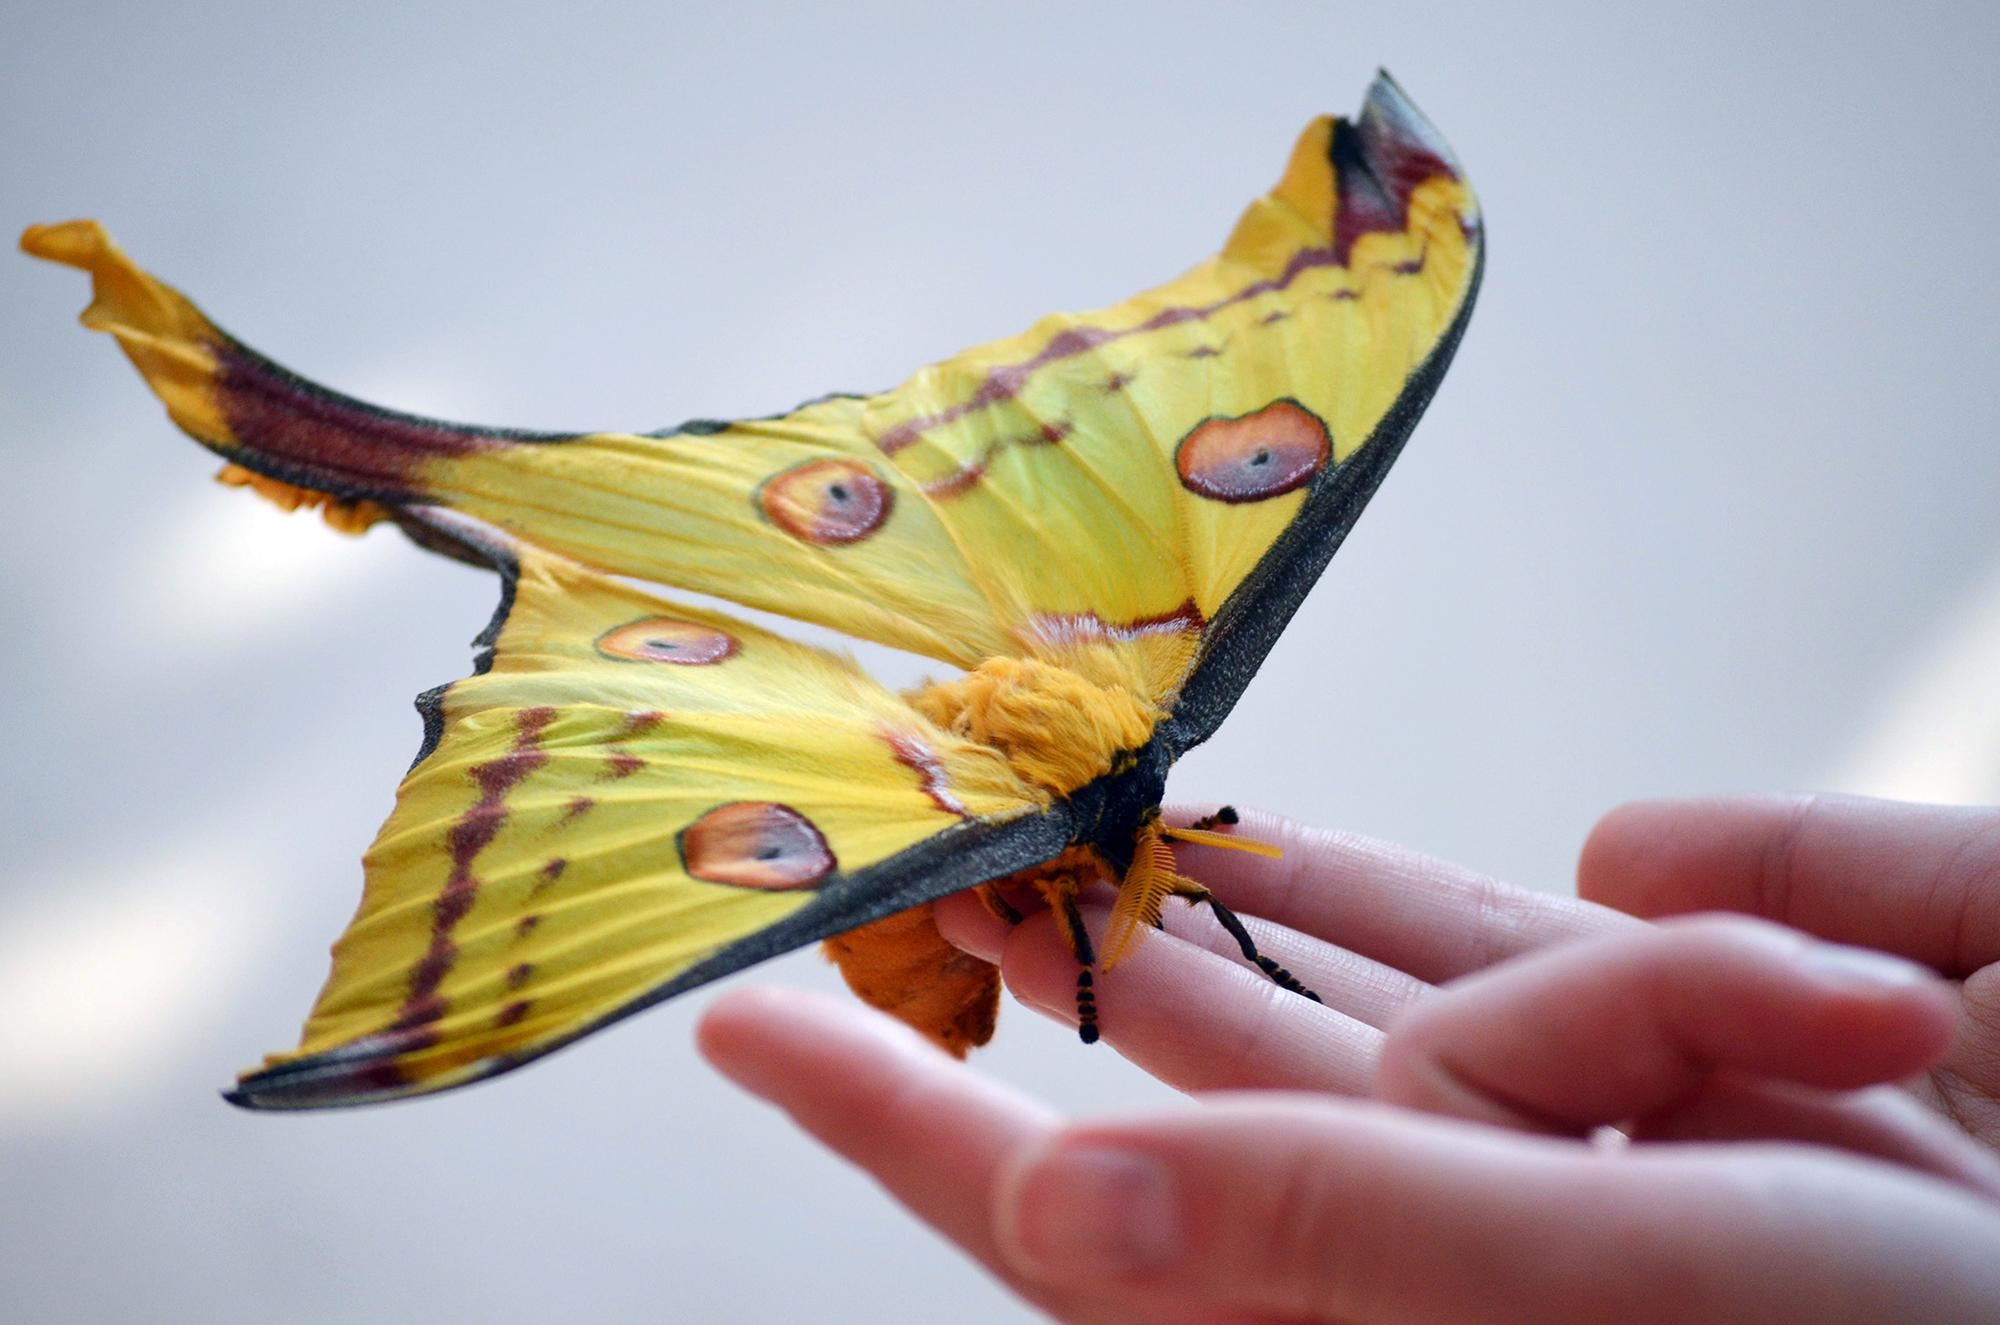 A rare comet moth, also known as a Madagascan moon moth, emerged from its cocoon last week at the Peggy Notebaert Nature Museum. (Courtesy Peggy Notebaert Nature Museum)